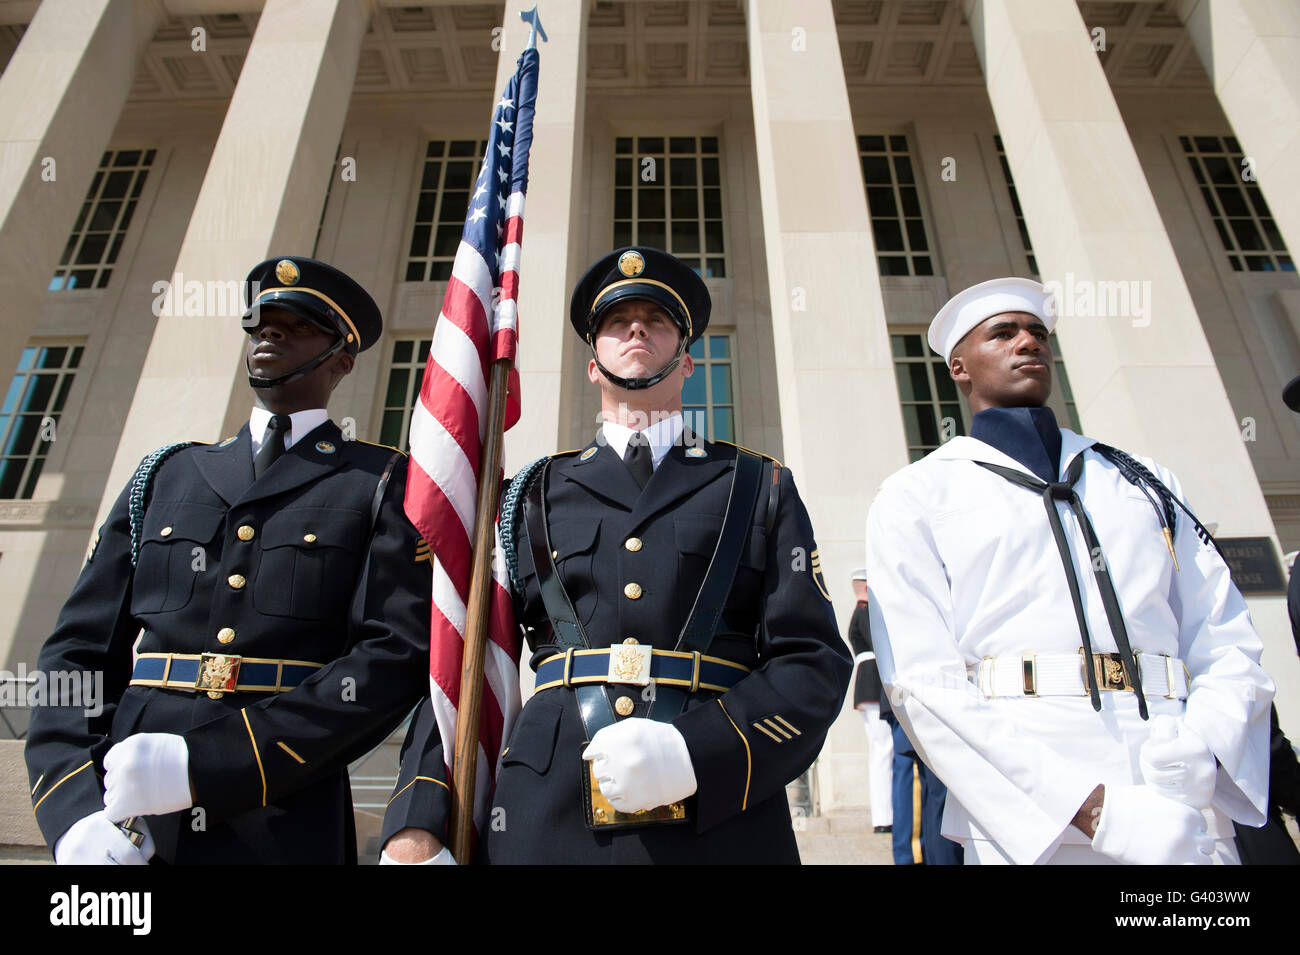 Members of the honor guard stand at attention in front of the Pentagon. - Stock Image